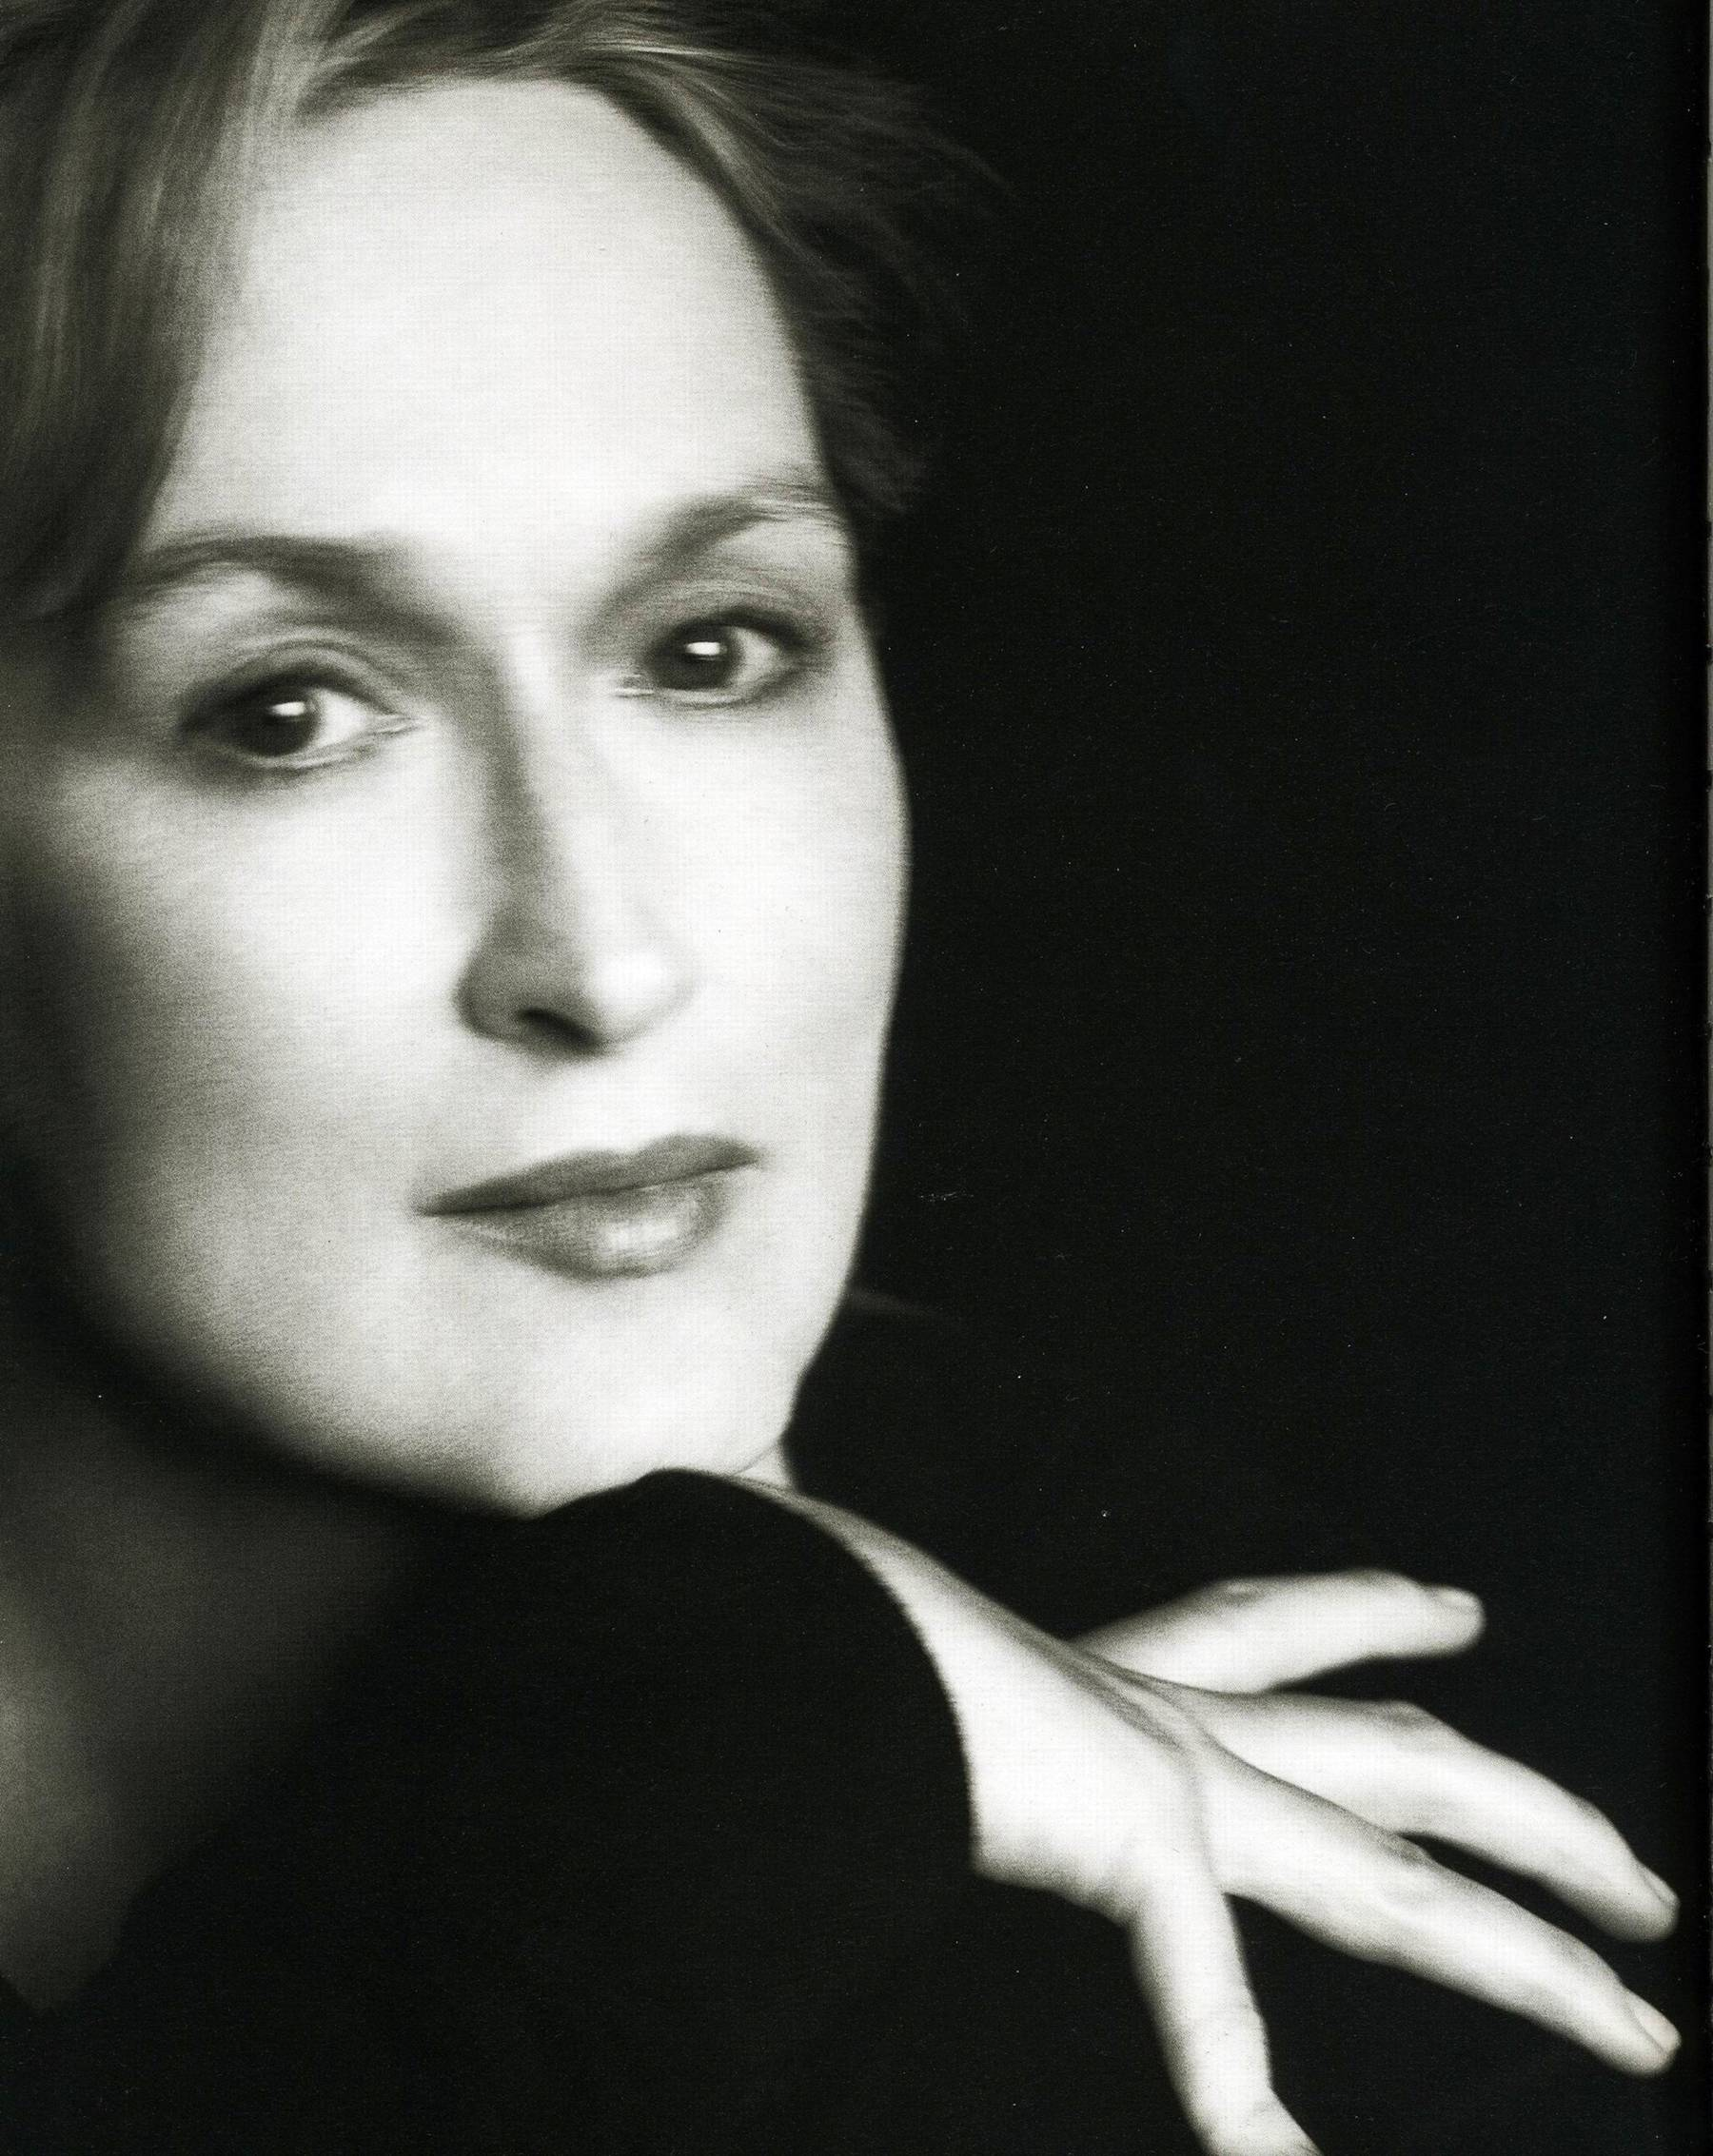 Meryl Streep photo 41 of 400 pics, wallpaper - photo #169845 ...